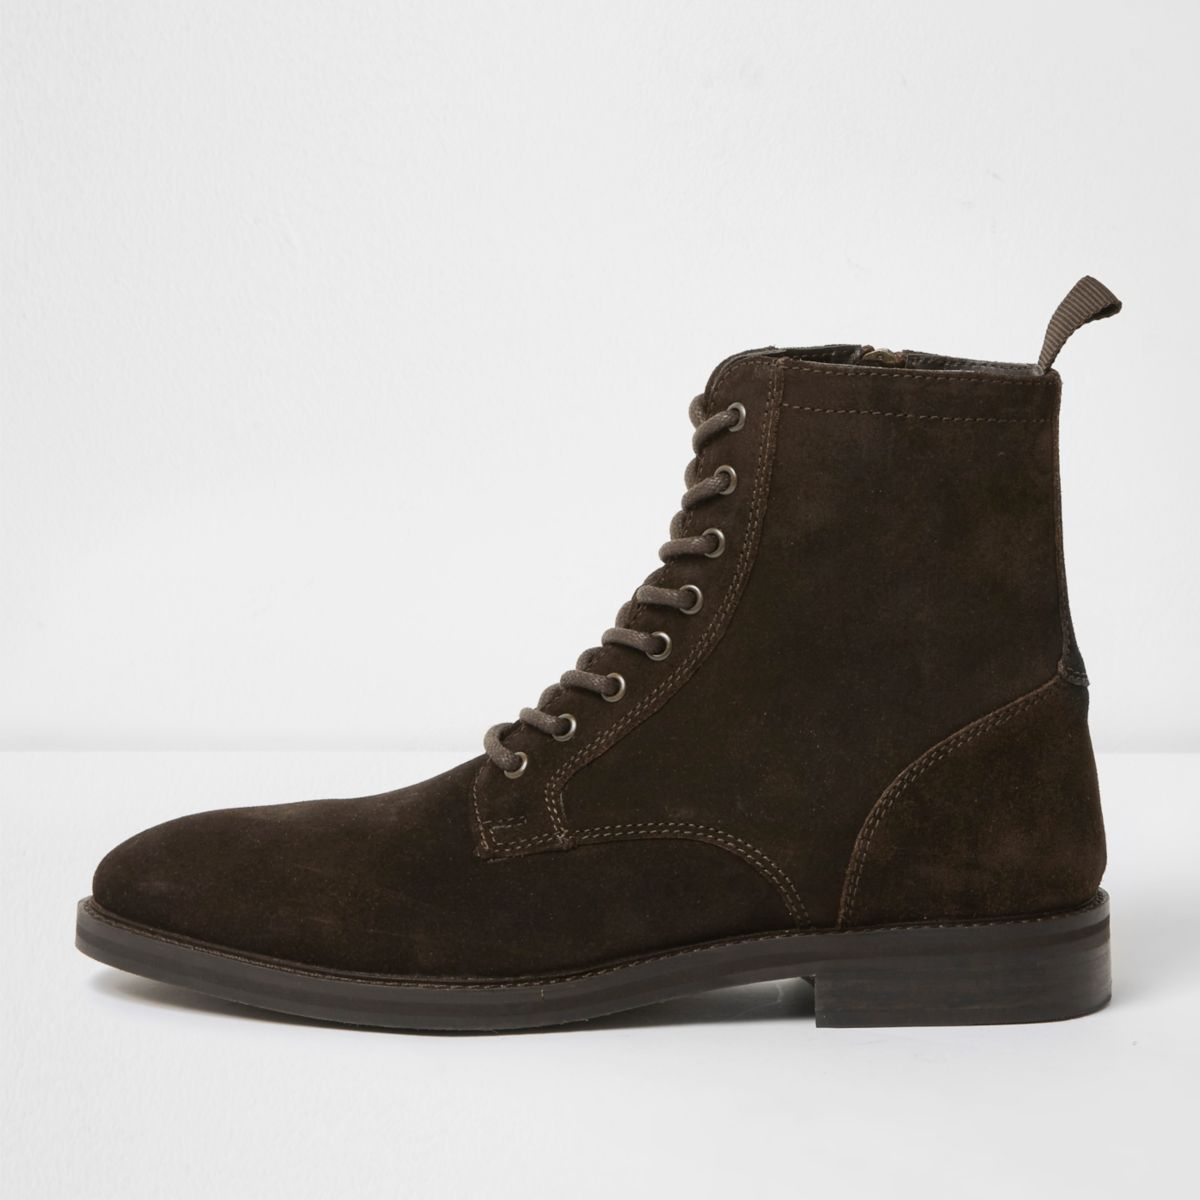 dark brown suede laceup boots shoes amp boots sale men